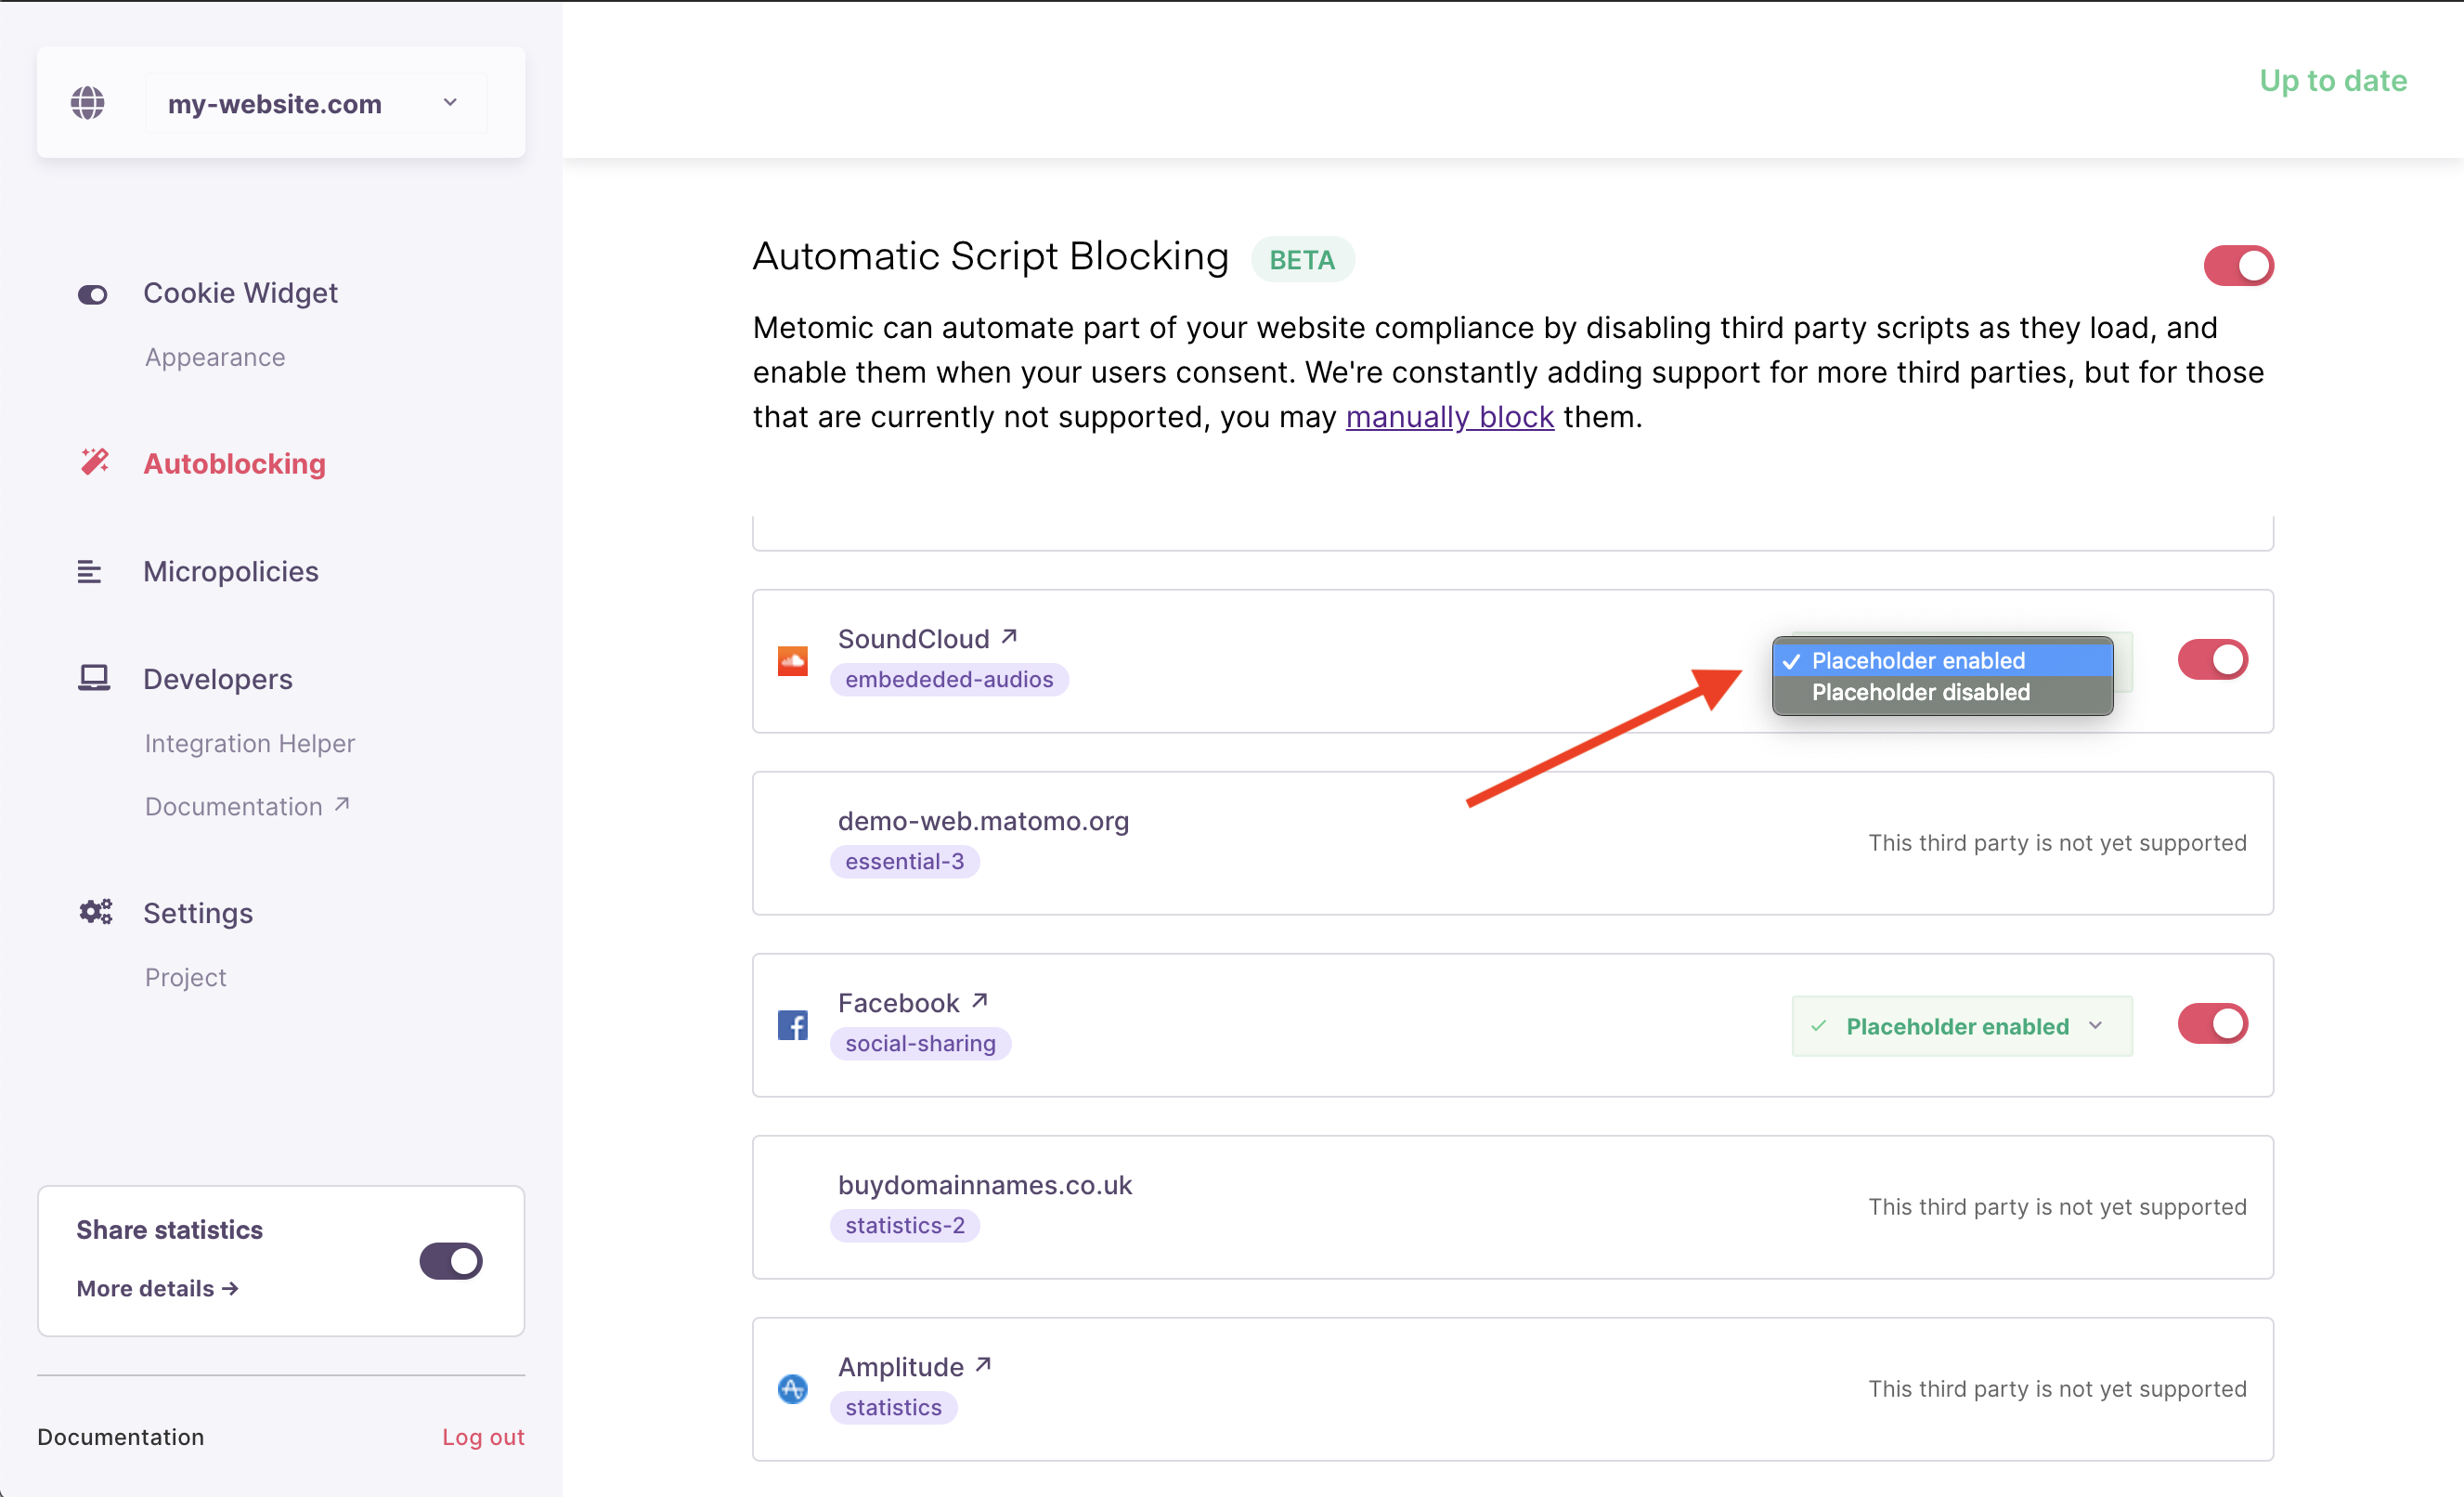 This will enable the Confirmic placeholder for Soundcloud when a soundcloud player is autoblocked.